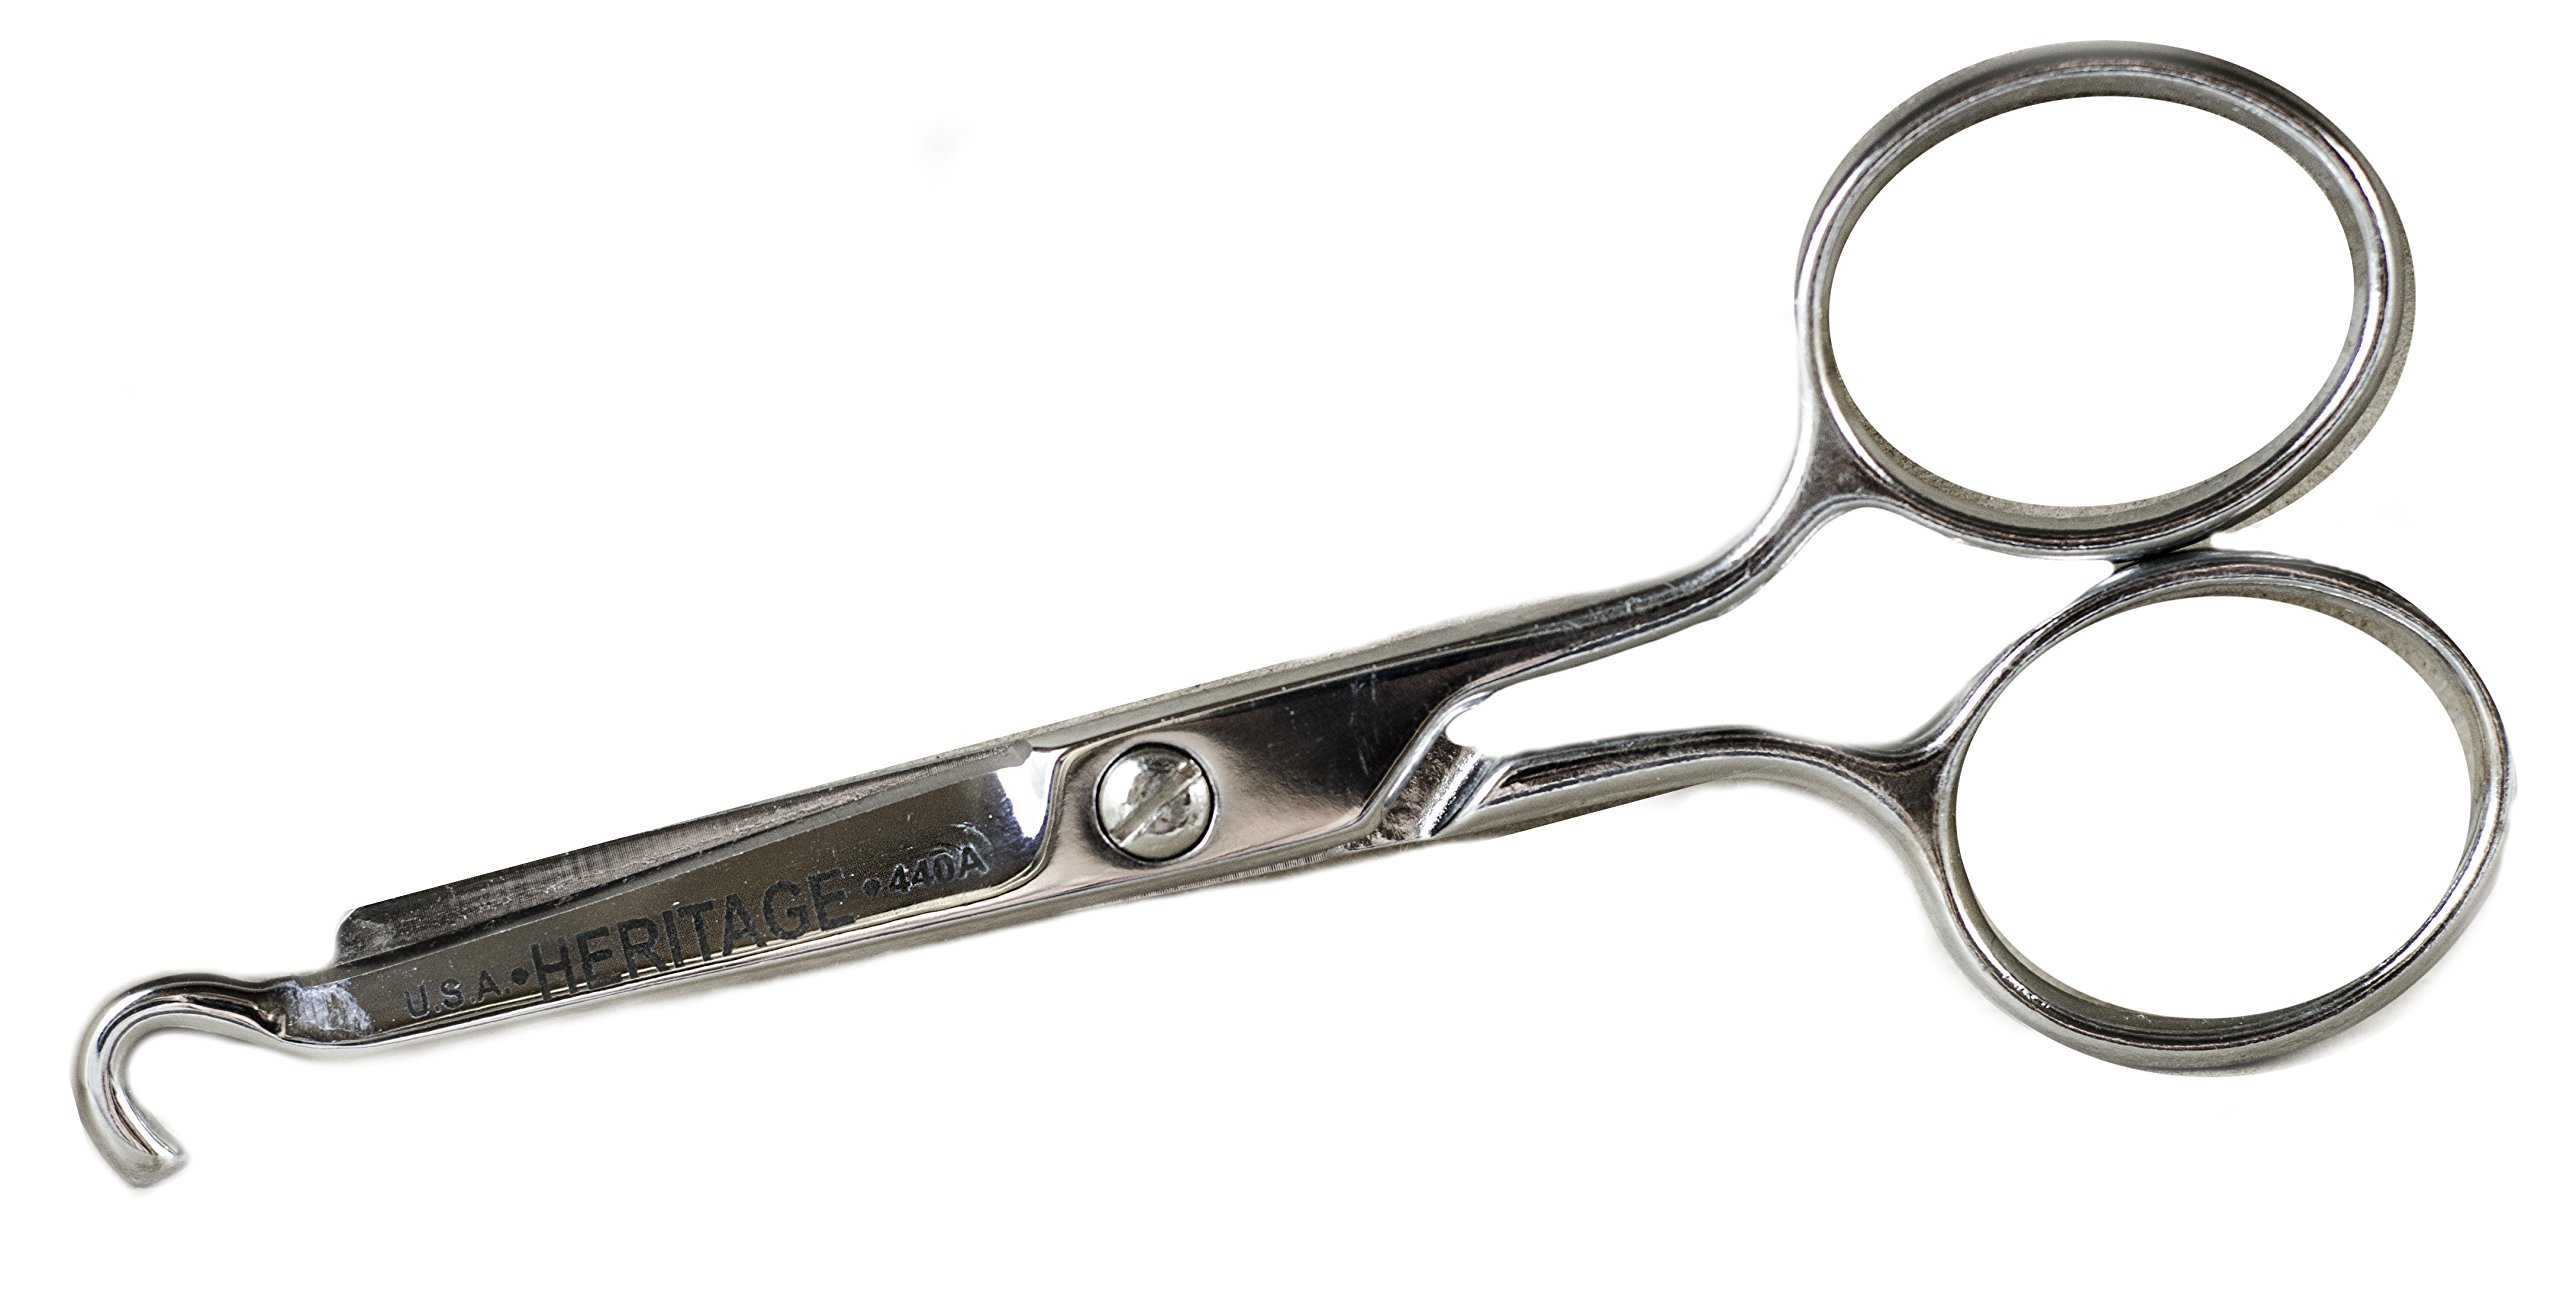 Heritage 440A Hook Scissors